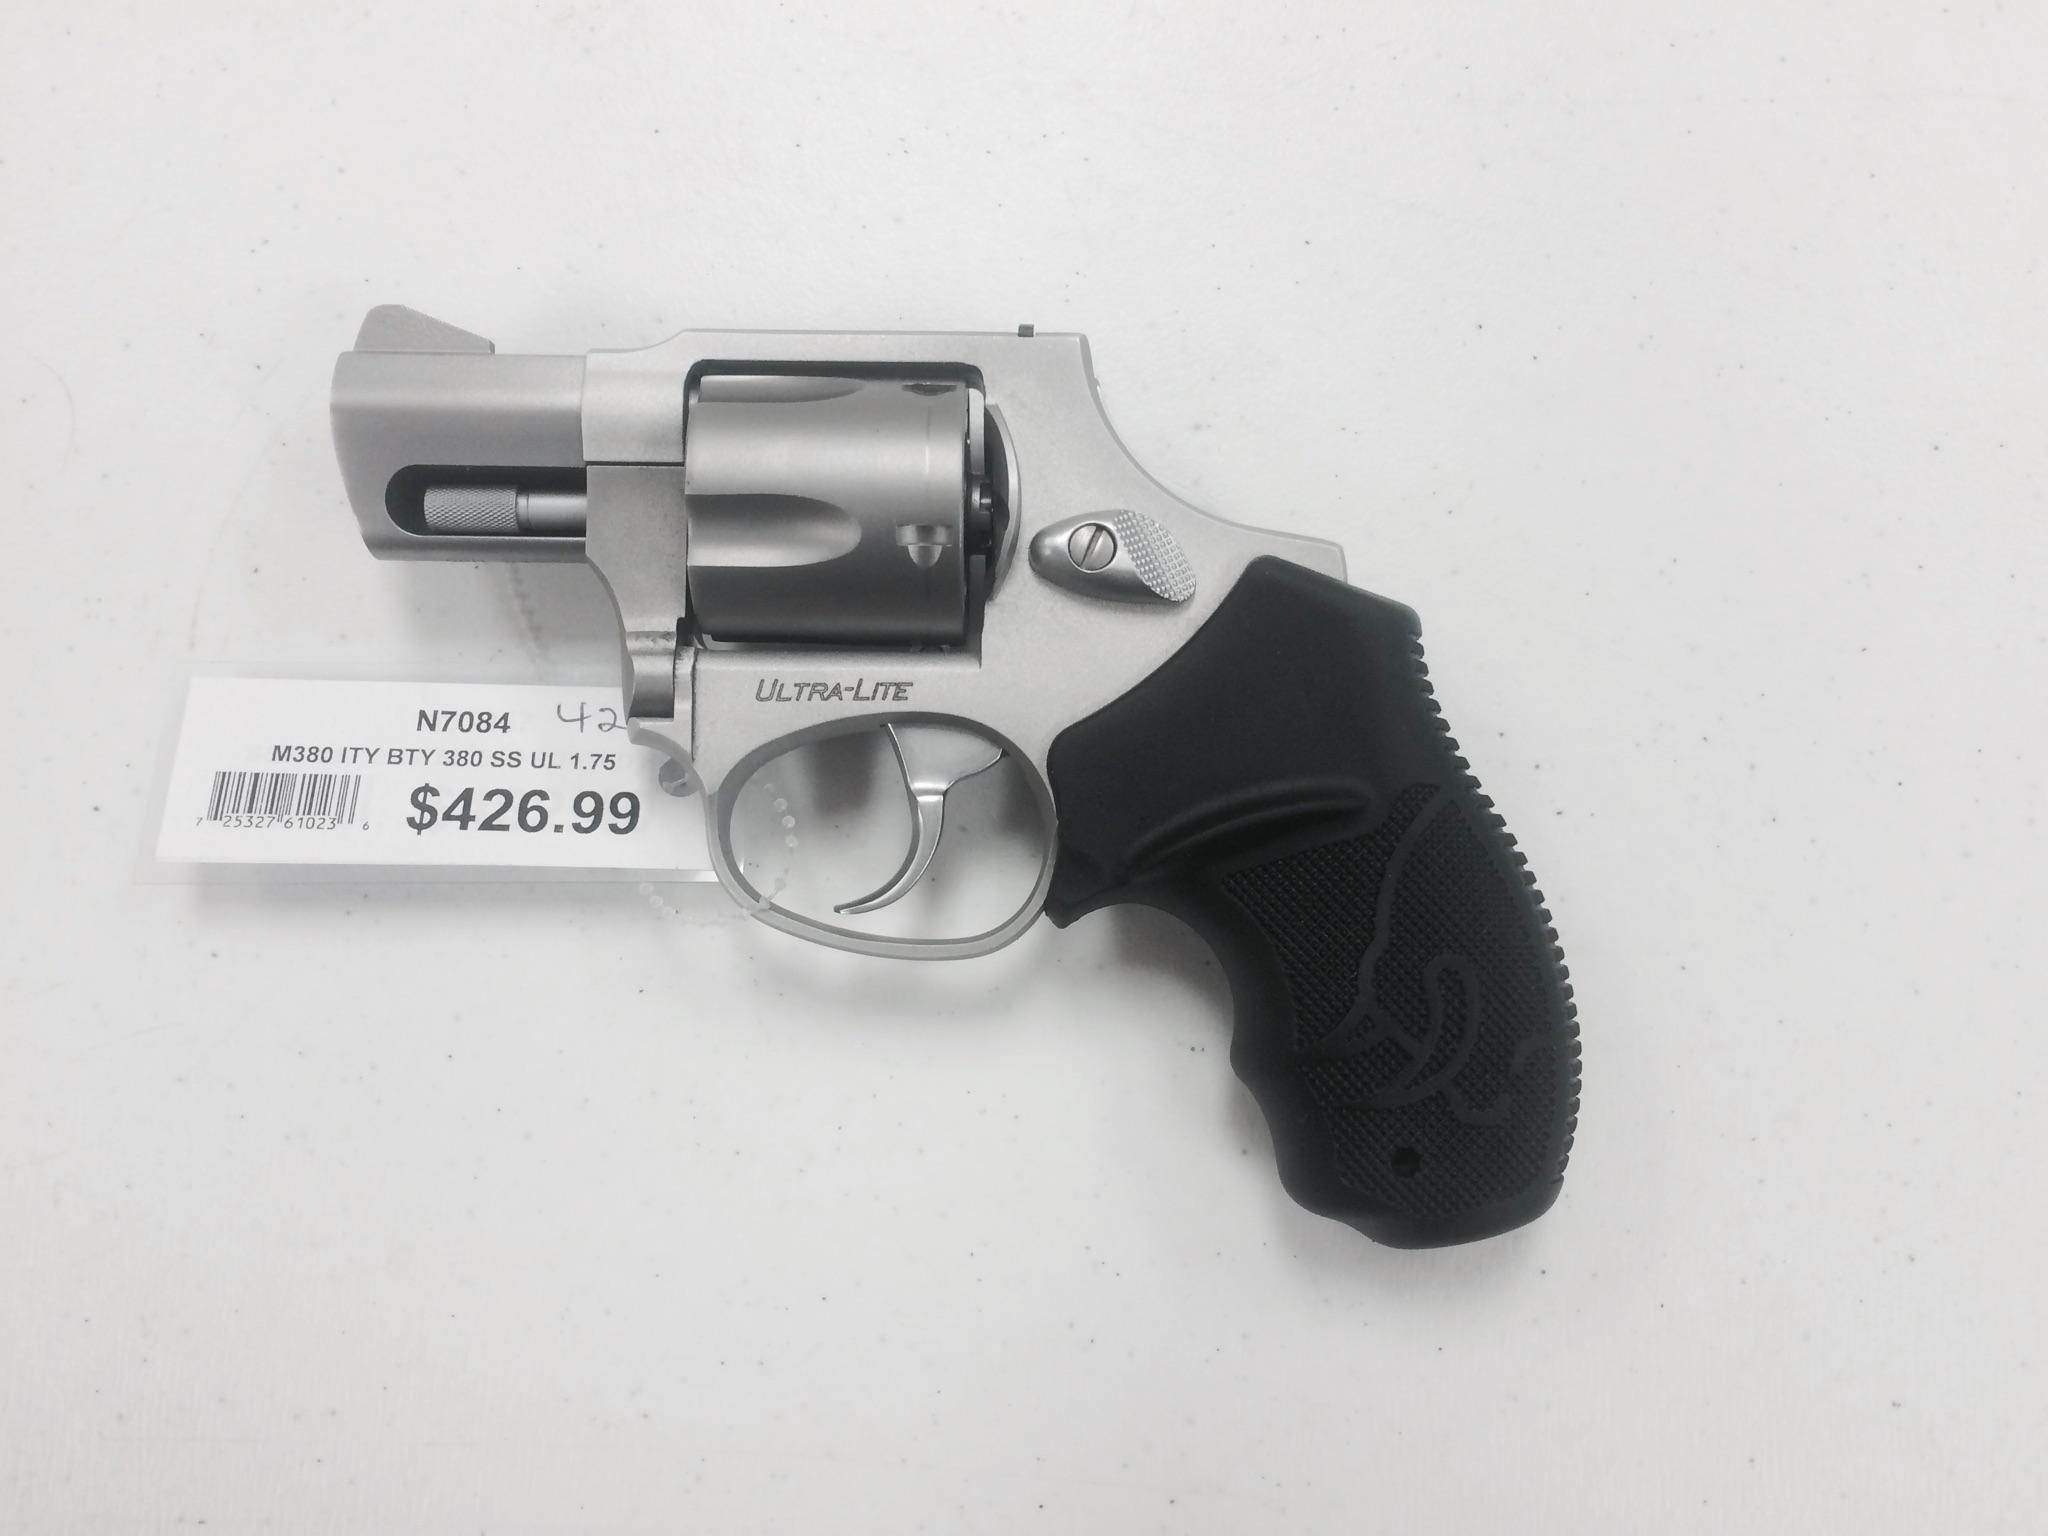 The Taurus Mini Revolver